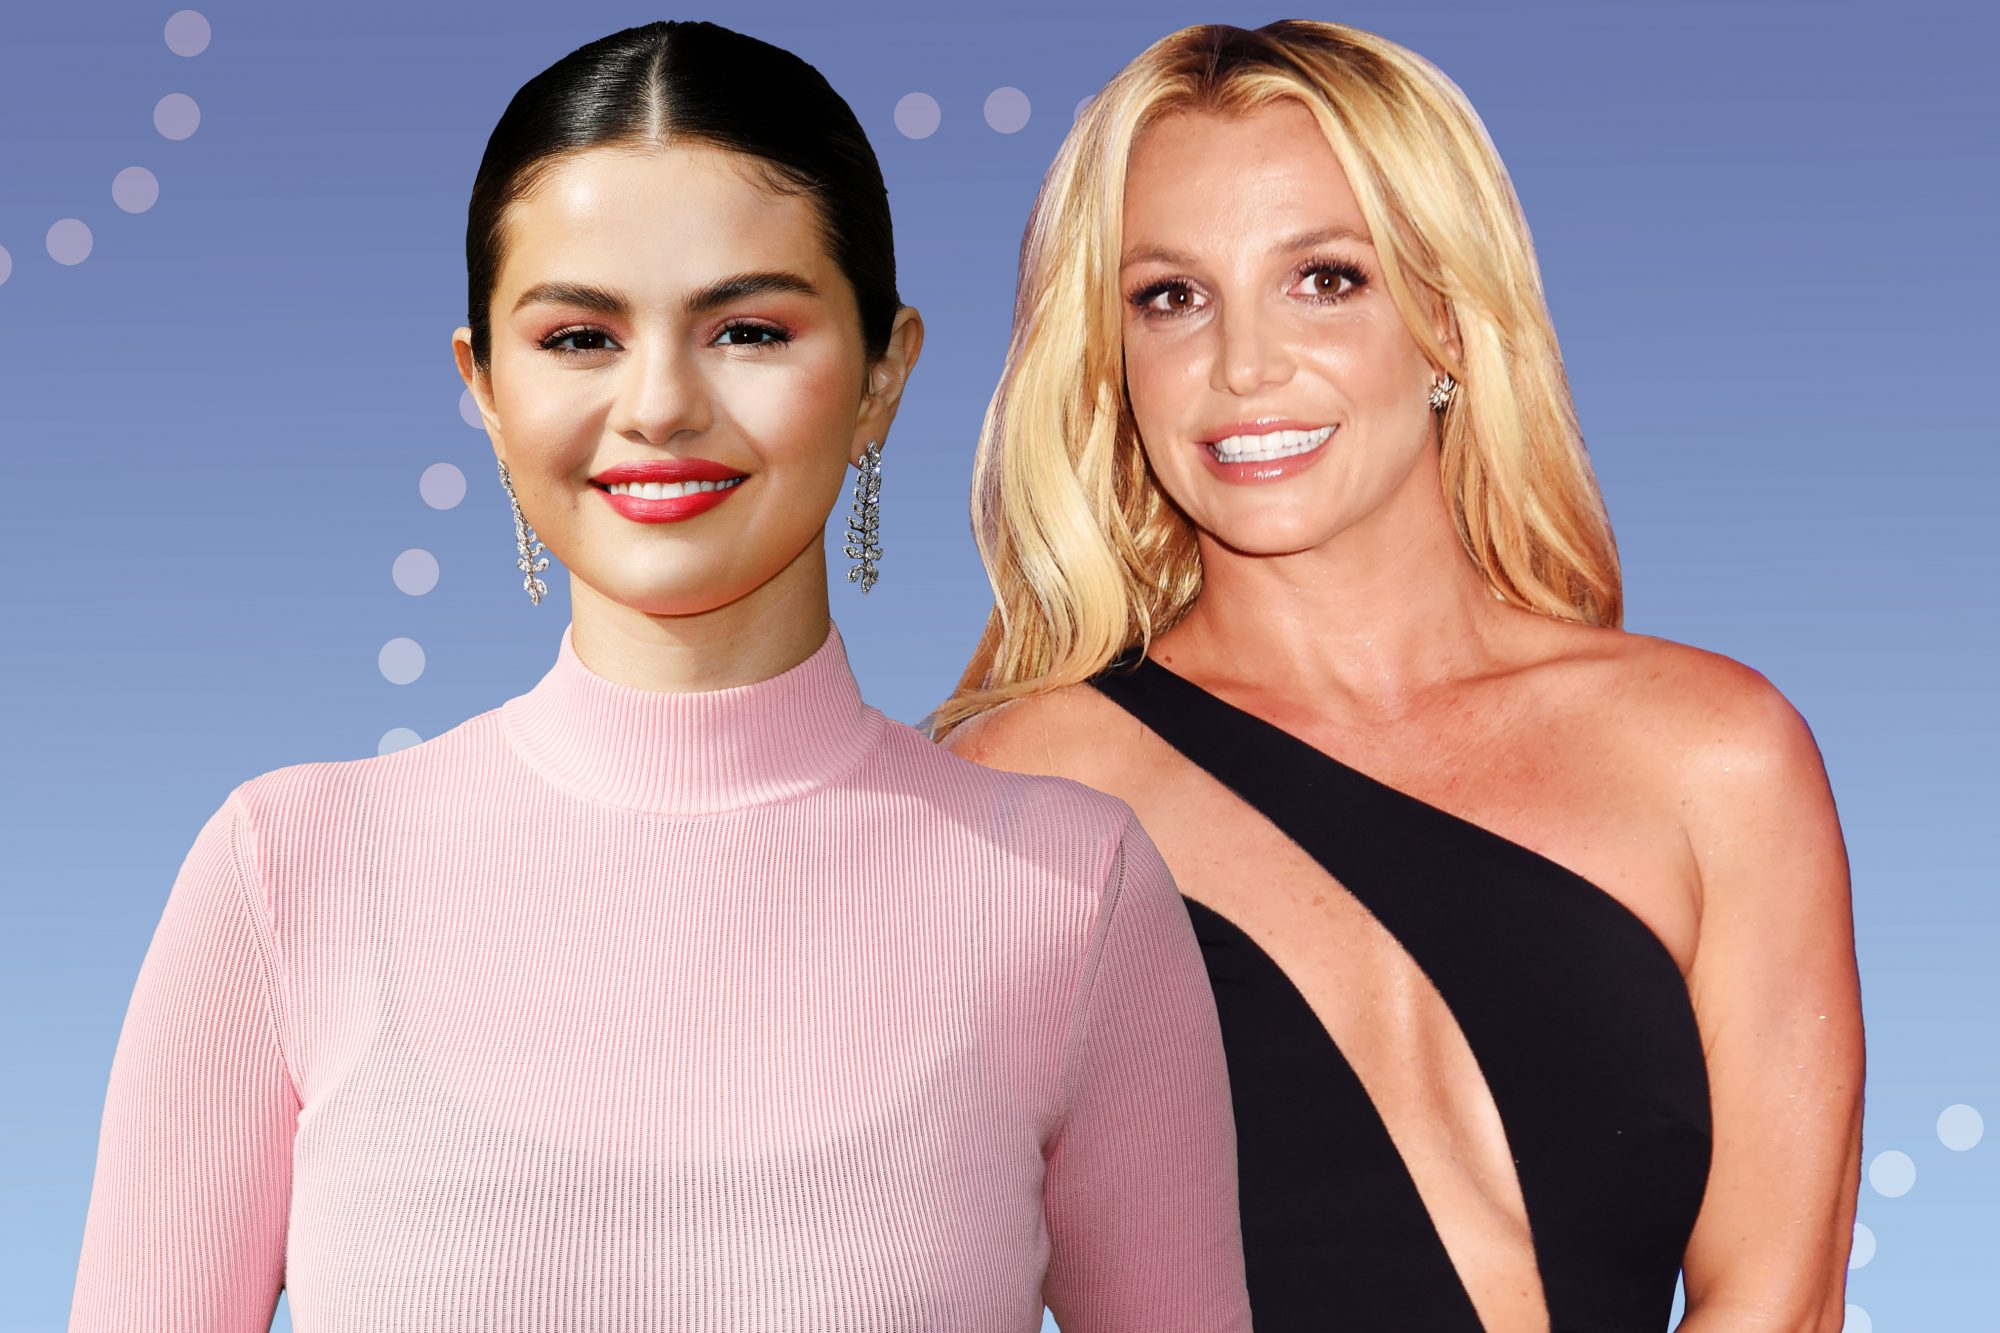 Selena-Gomez-Gifted-Britney-Spears-These-Beauty-Products-You-Can-Grab-From-Sephora-GettyImages-597560650-1293813930